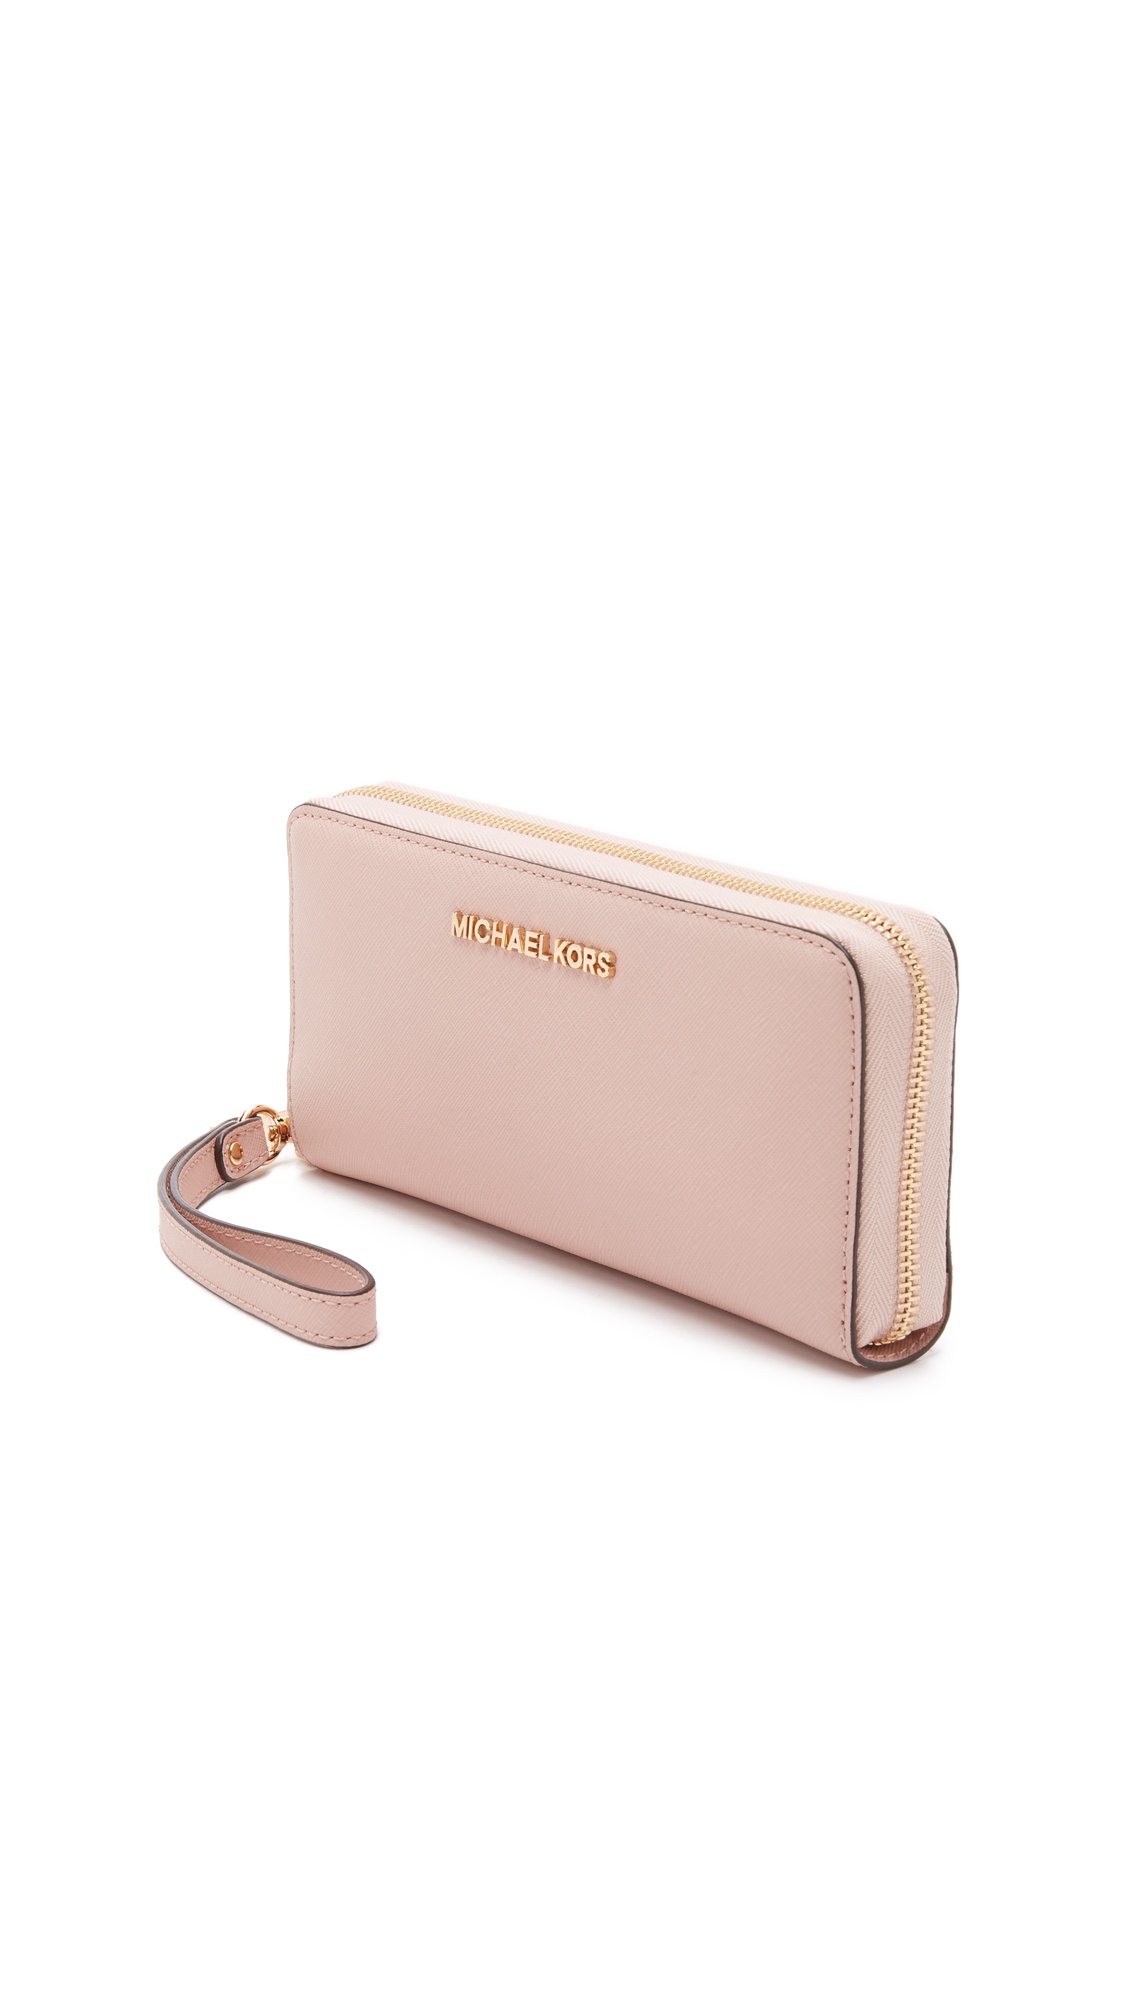 e4fcf7385c6e MICHAEL Michael Kors Jet Set Travel Continental Wallet - Ballet in Pink -  Lyst